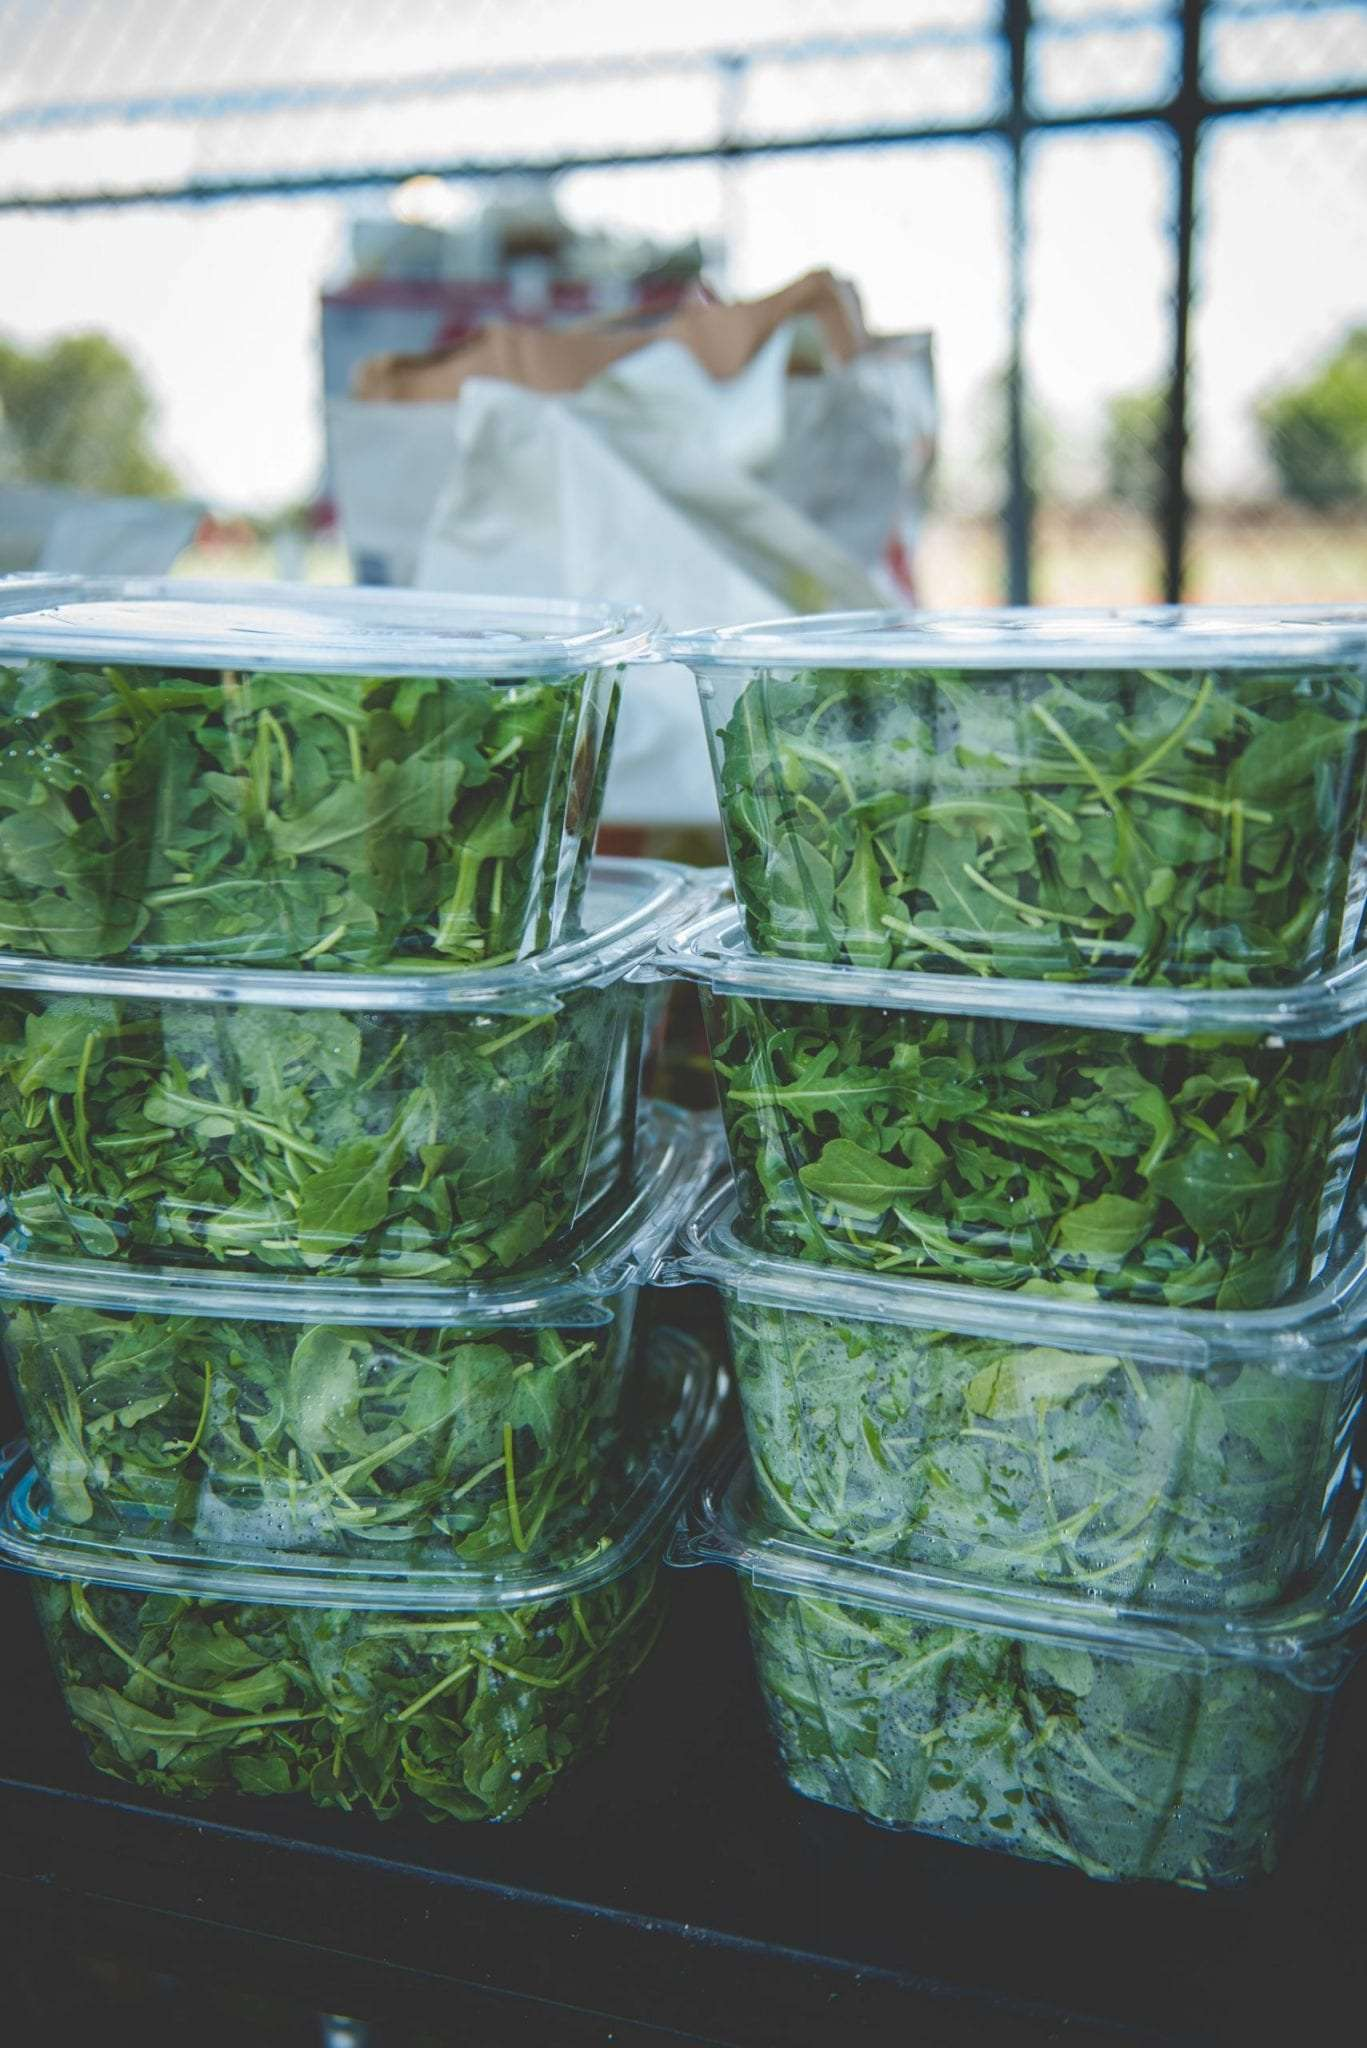 where to get free produce in philadelphia